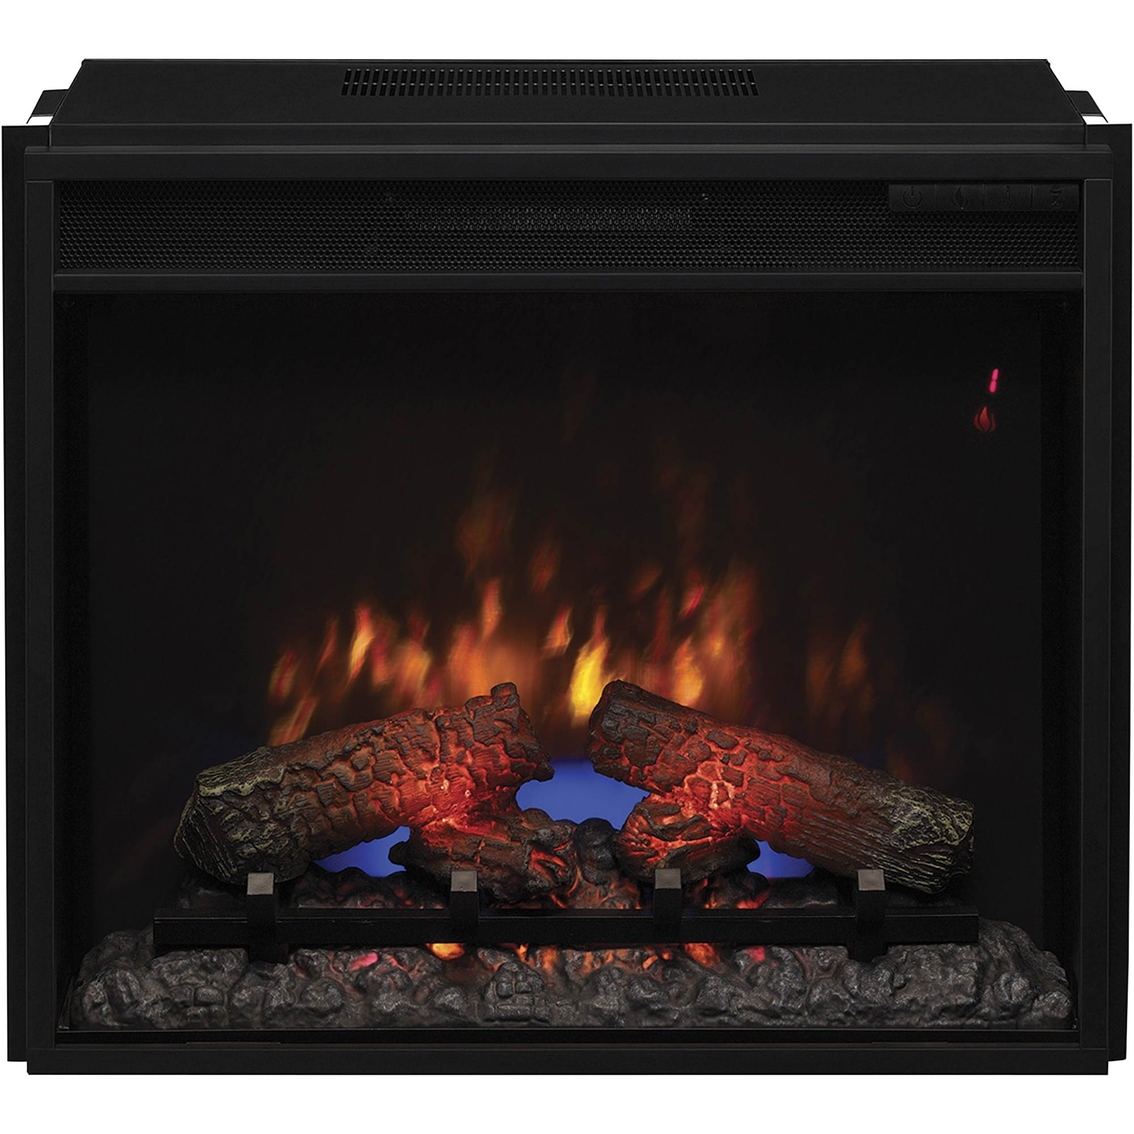 Twinstar Electric 23 In Classic Flame Fireplace Insert